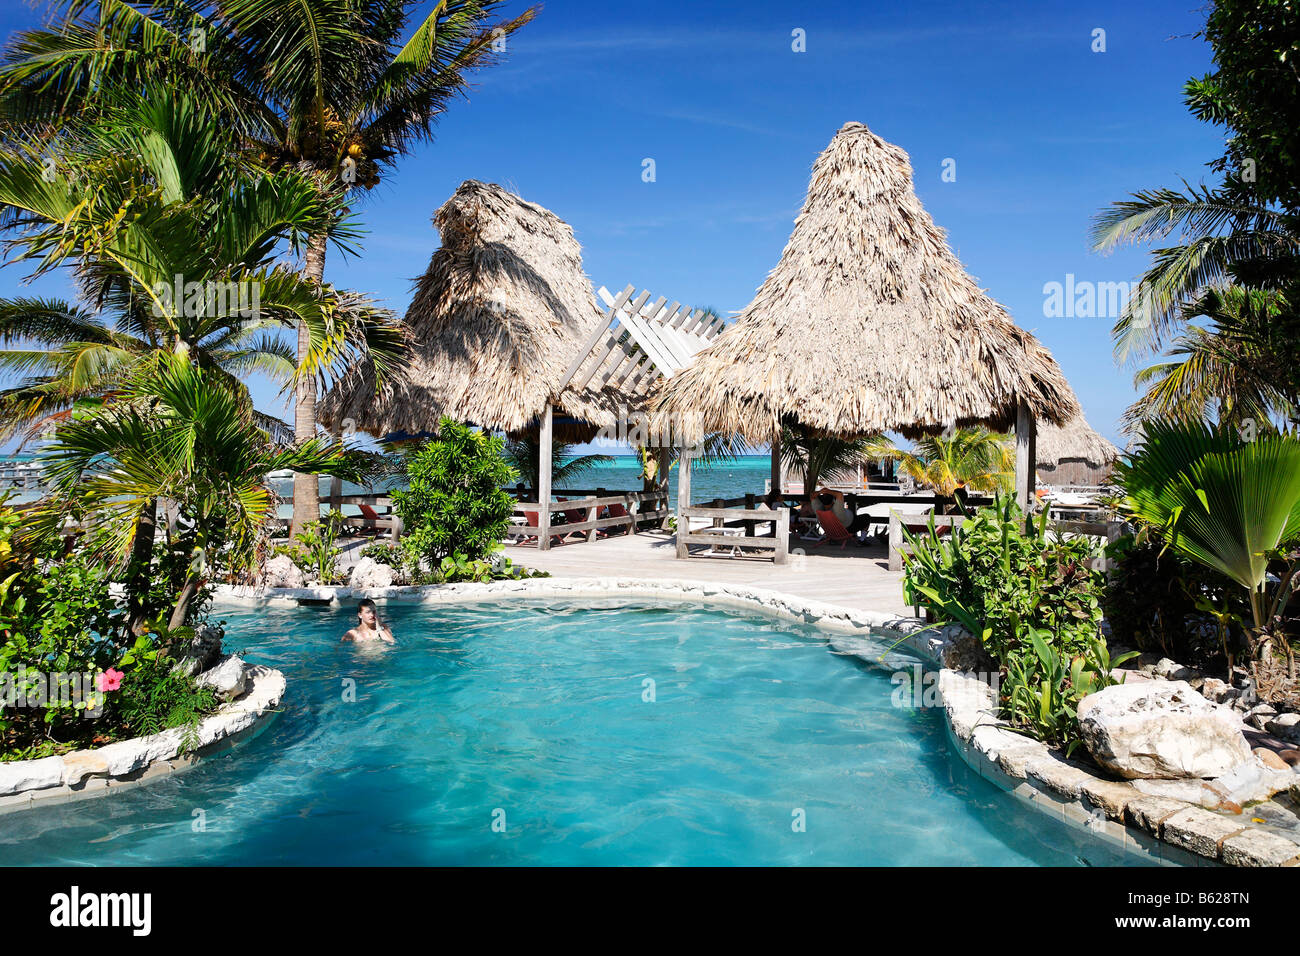 Hotel swimming pool with views onto the ocean, San Pedro, Ambergris Cay Island, Belize, Central America, Caribbean Stock Photo